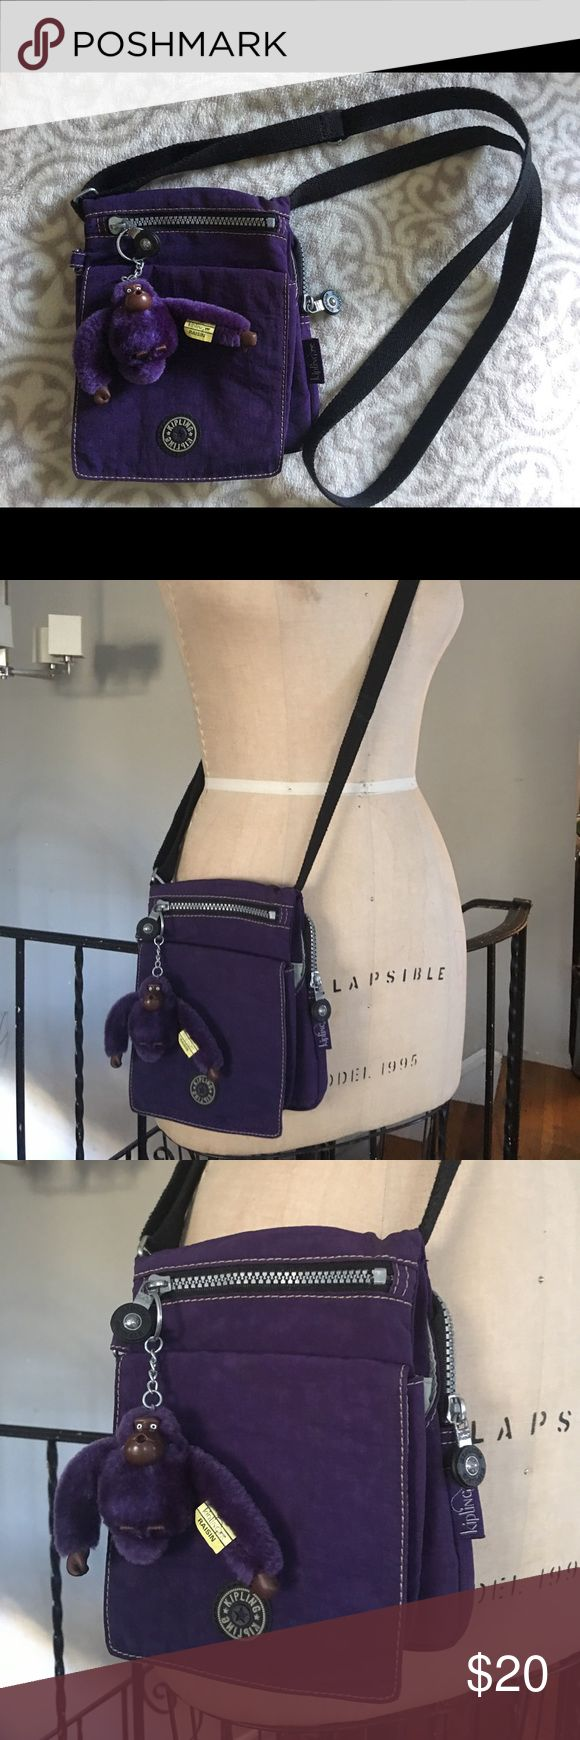 Original Purple Kipling Raisin Cross Body Bag Very good used condition. Very minor discoloration on the front.  Only noticeable when looking for it. Original monkey key ring included. Kipling Bags Crossbody Bags